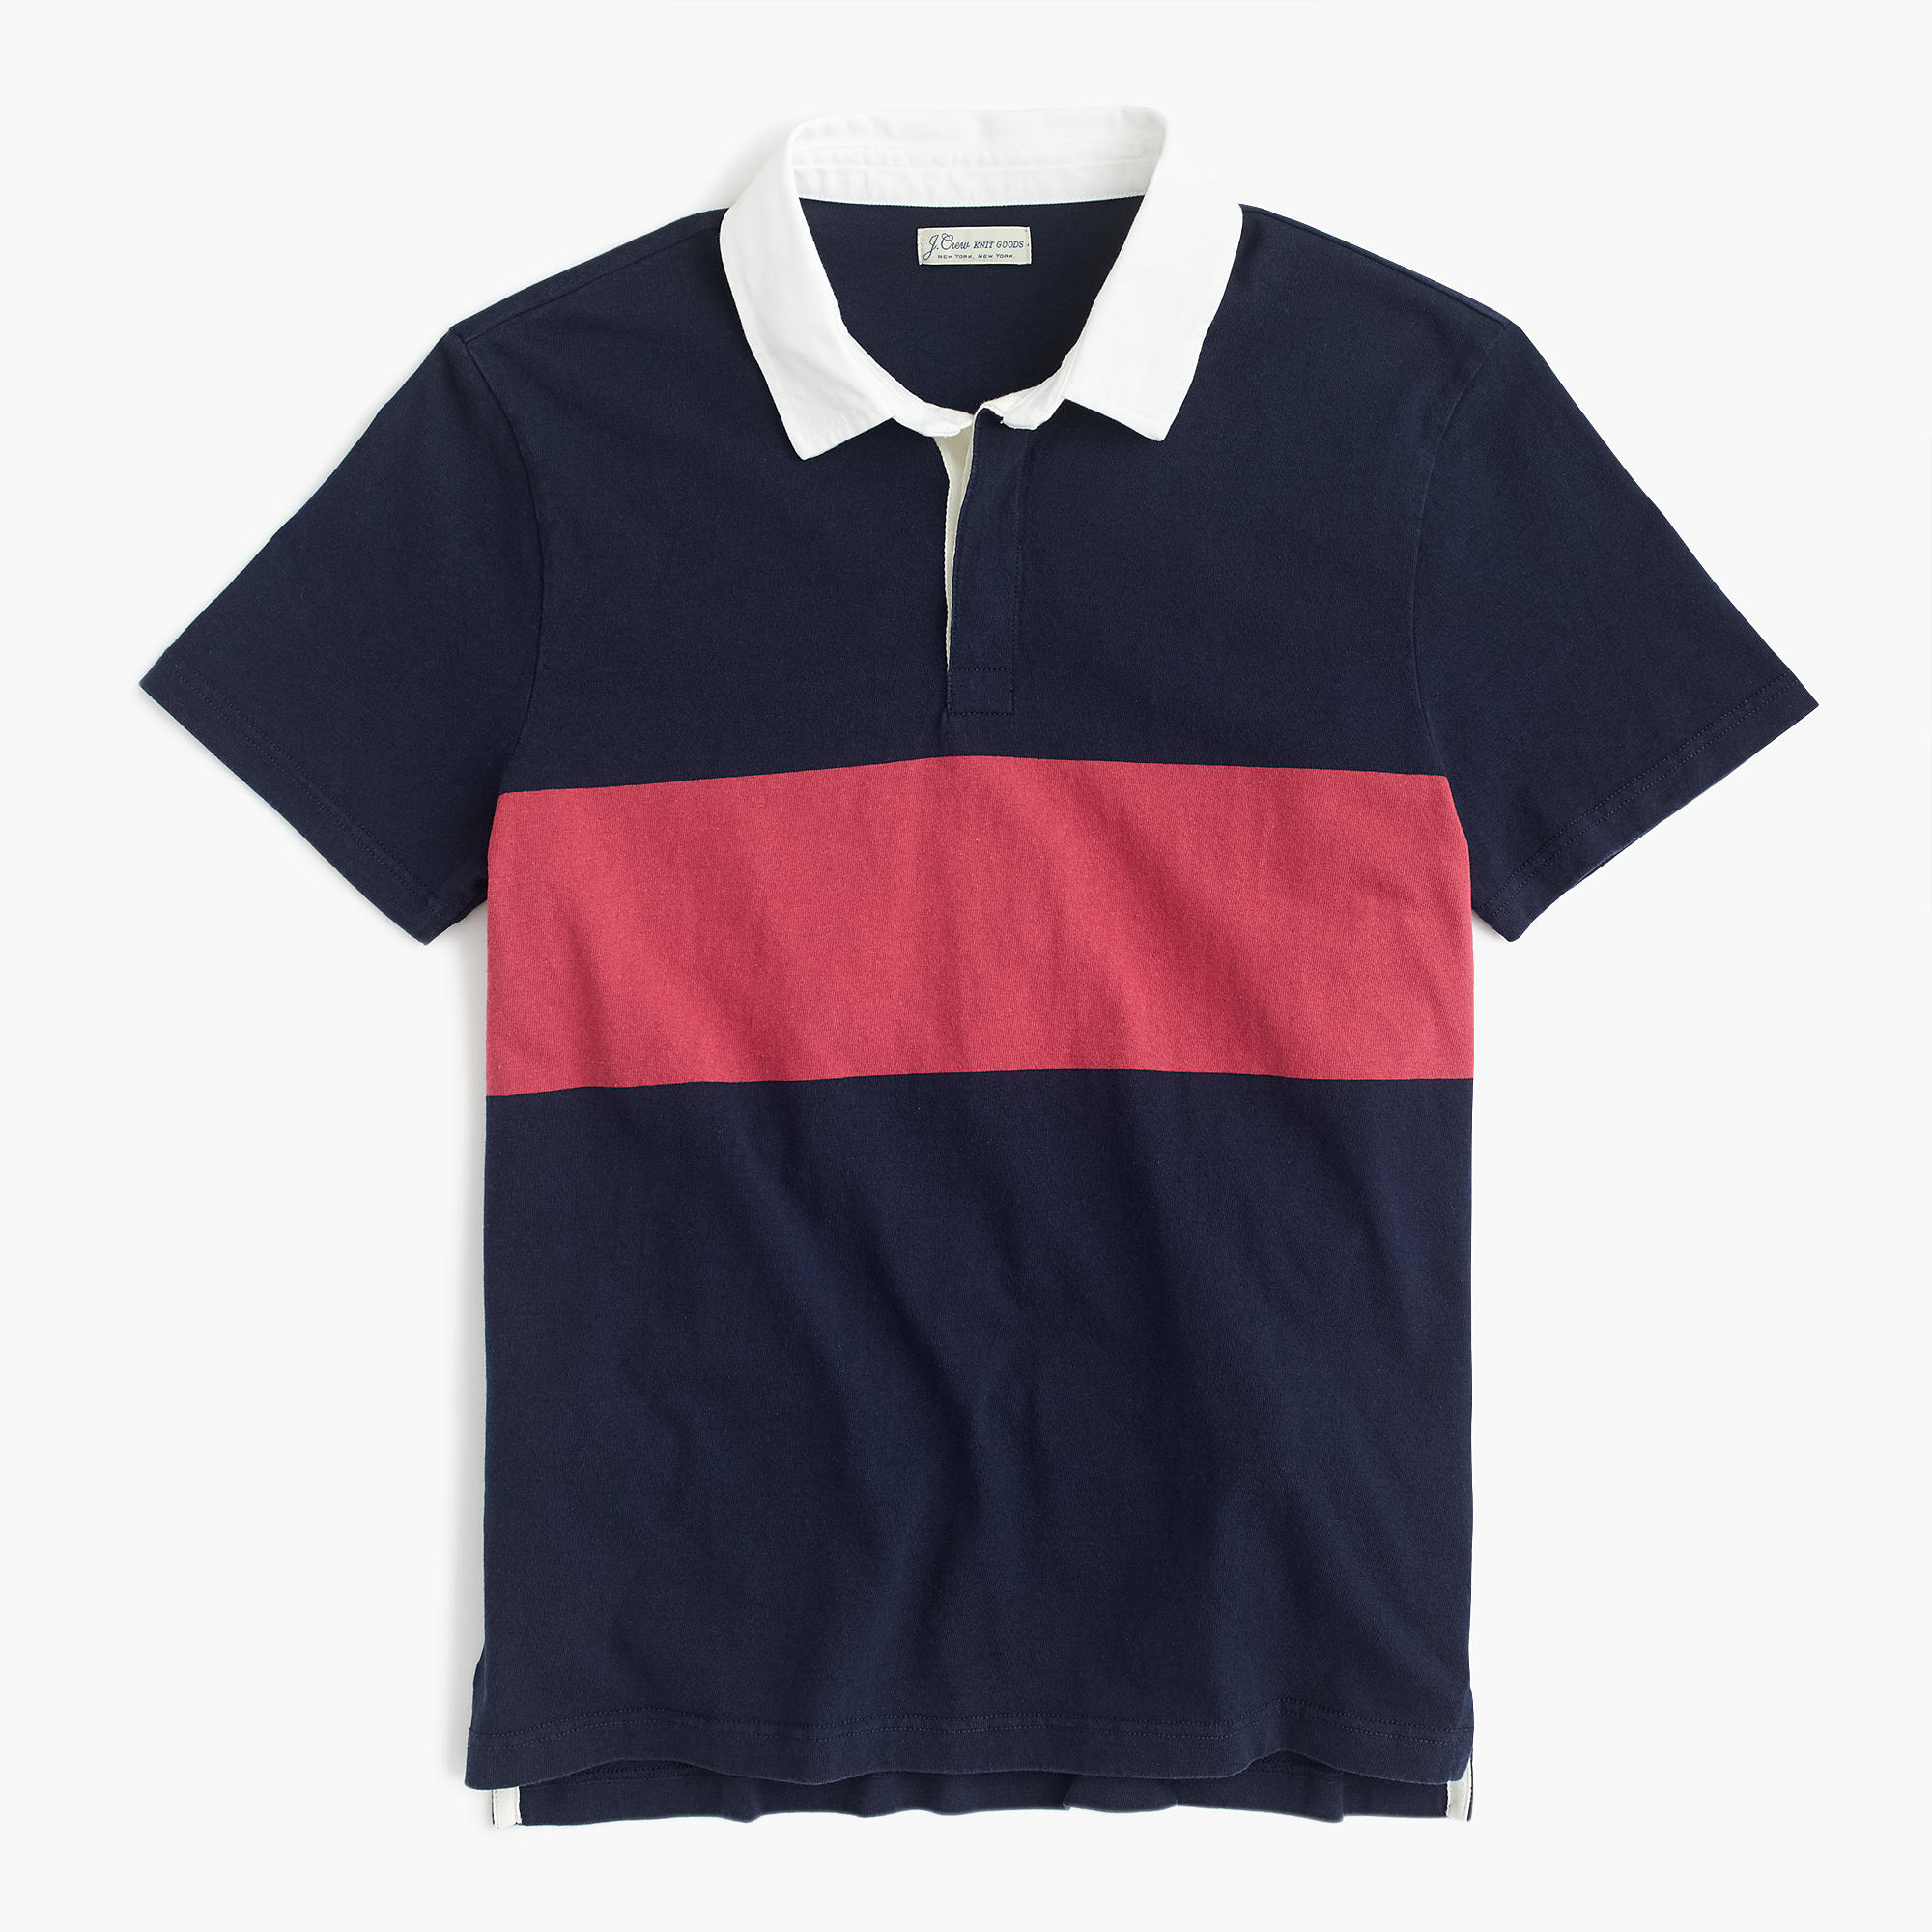 Rugby Inspired Mens Polo Shirt in Red and Navy from J. Crew